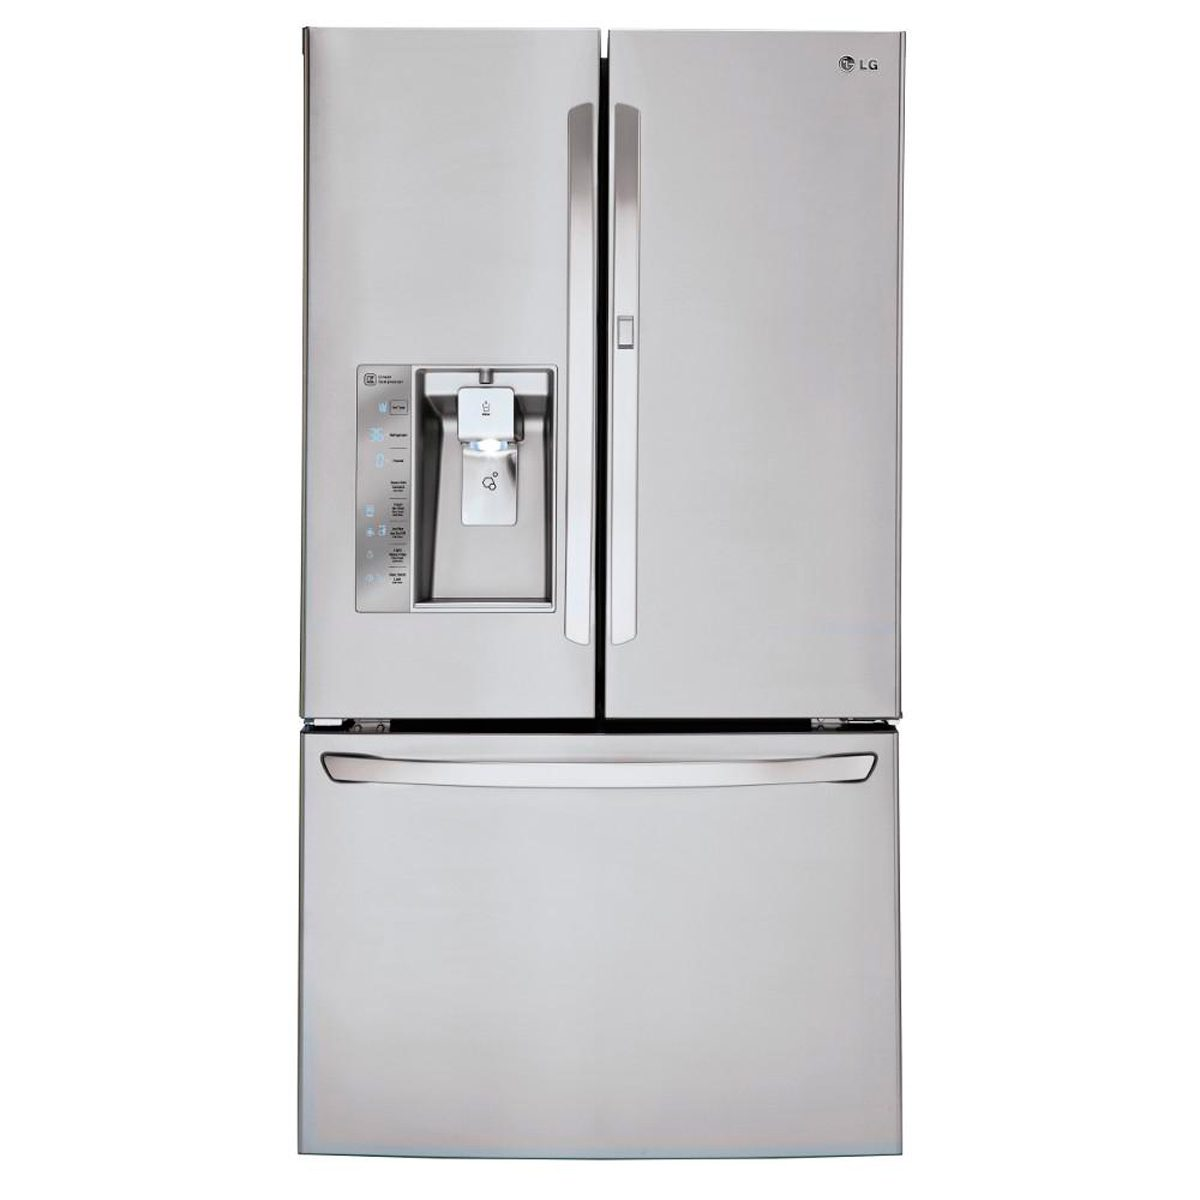 The Best Refrigerators for 2019 | Family Handyman